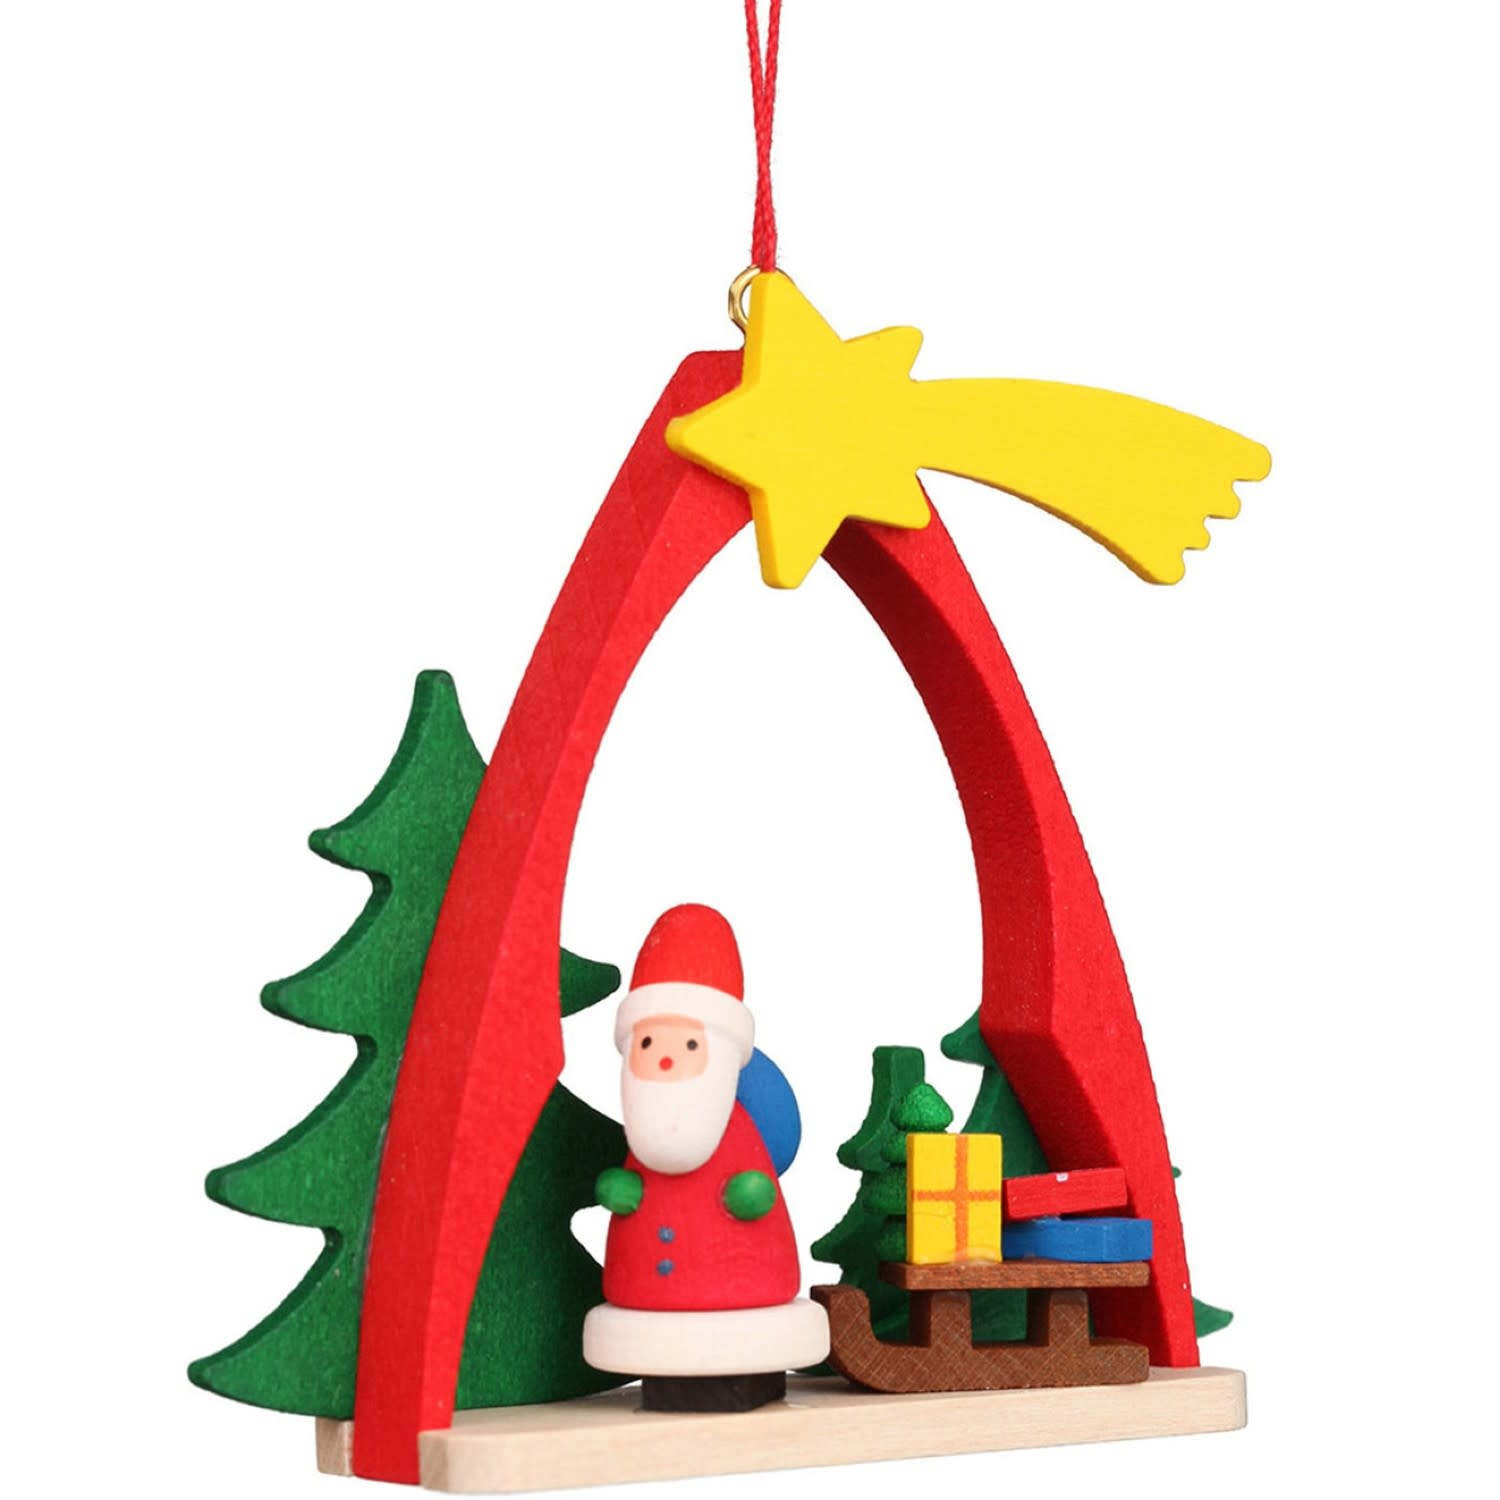 10-0862 Ulbricht Ornament - Santa with Sled in Arch